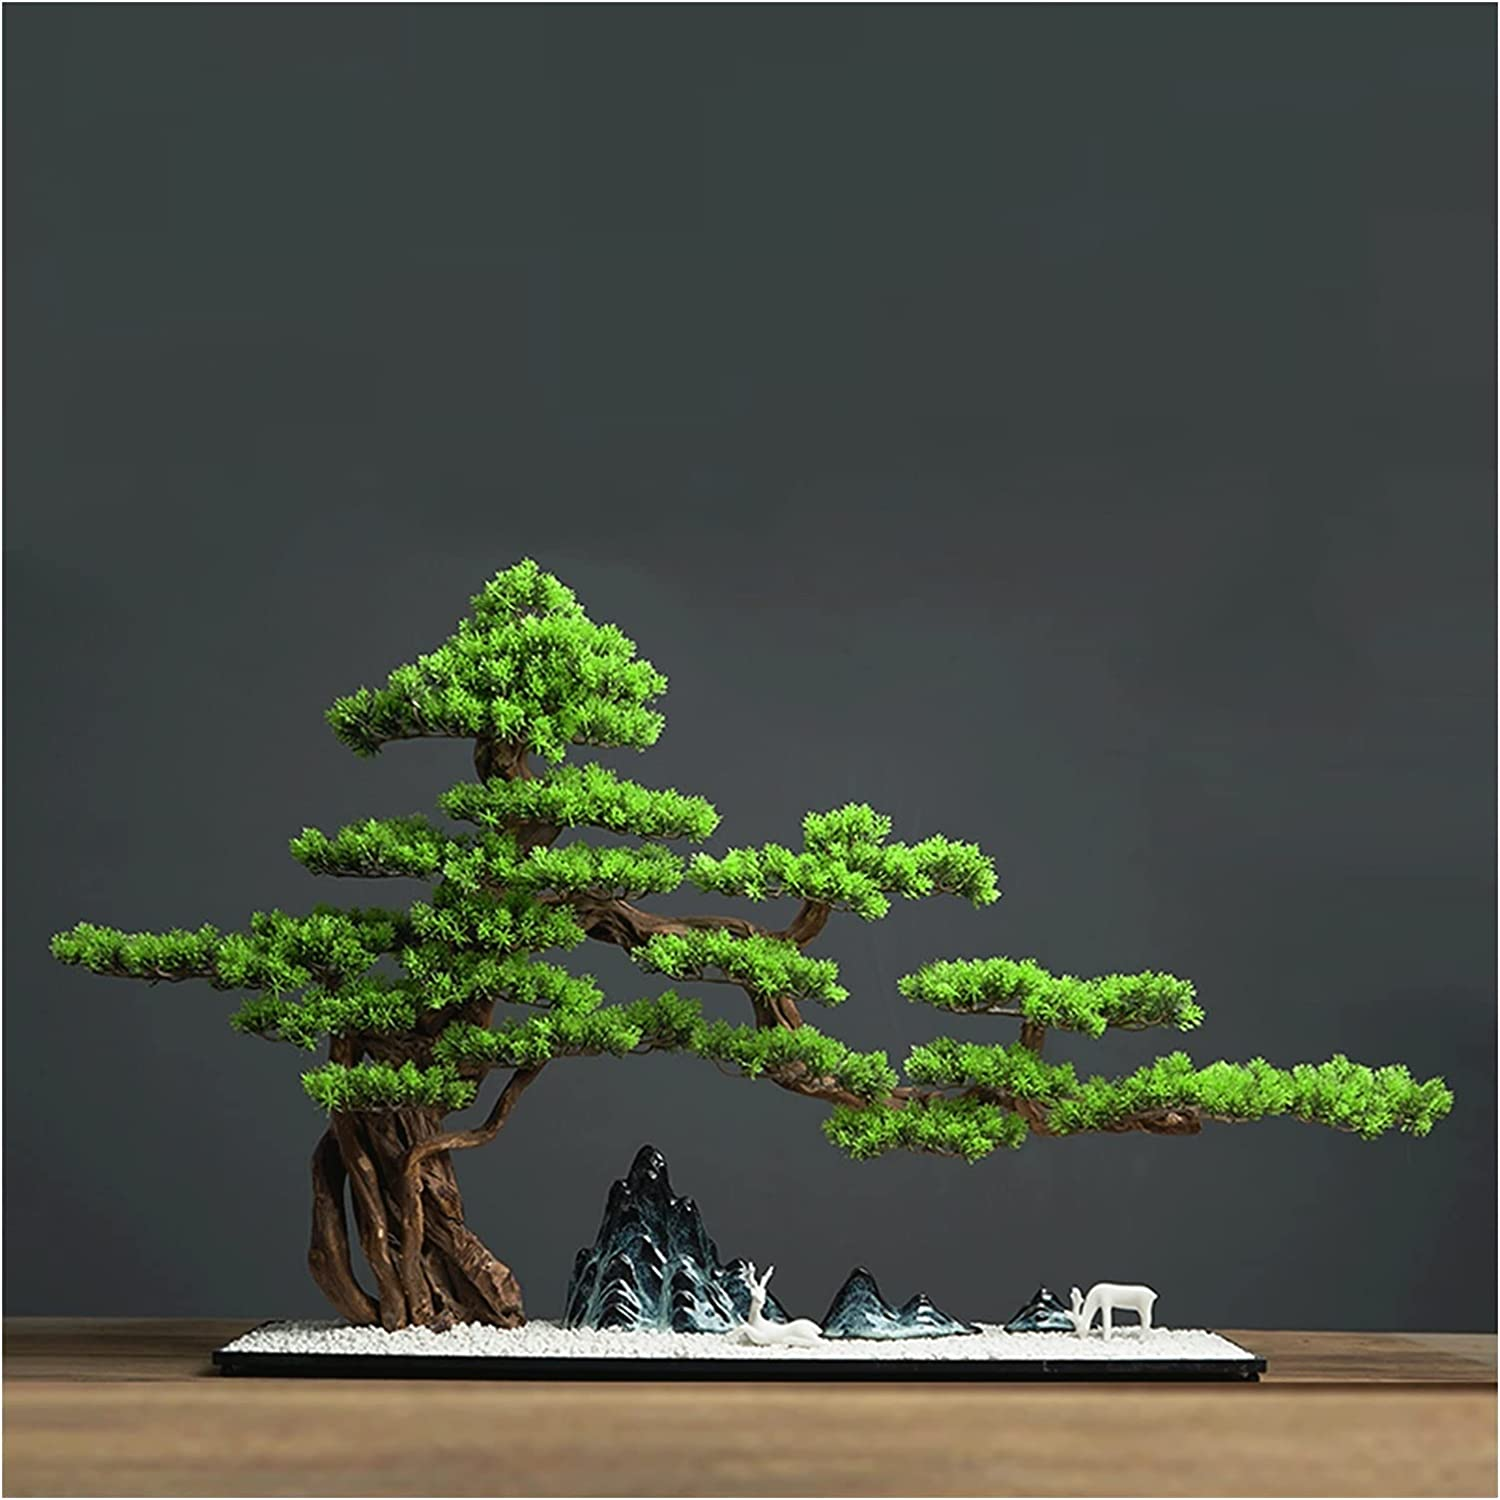 Tingting1992 Artificial Plants 21-inch 2021new 5% OFF shipping free Tall Tree,Art Pine Fake